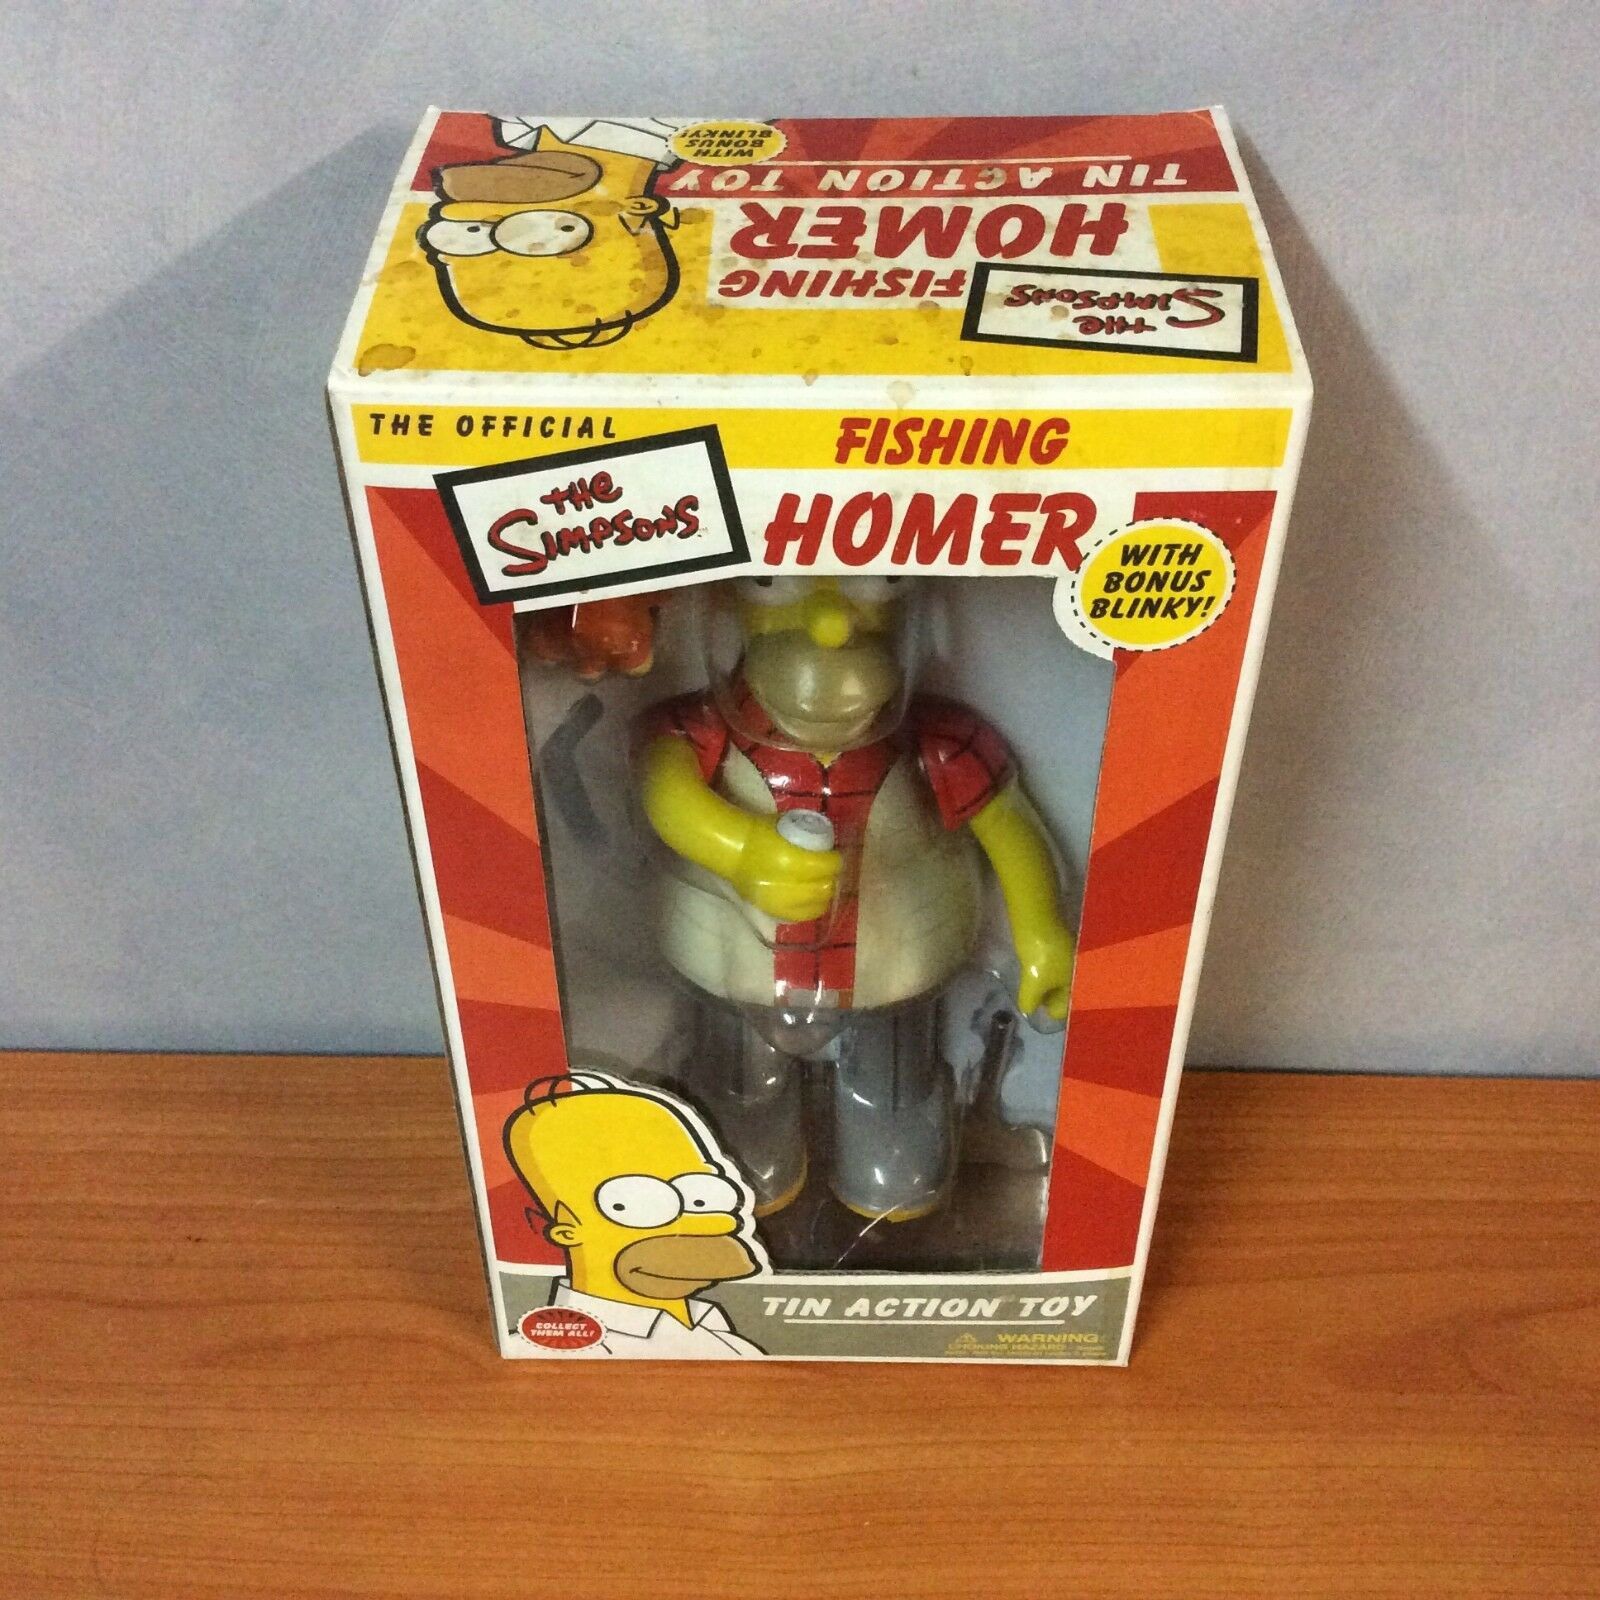 2003 The The The Simpsons Fishing Homer Tin Action Toy w  Bonus Blinky  - New aff1bf